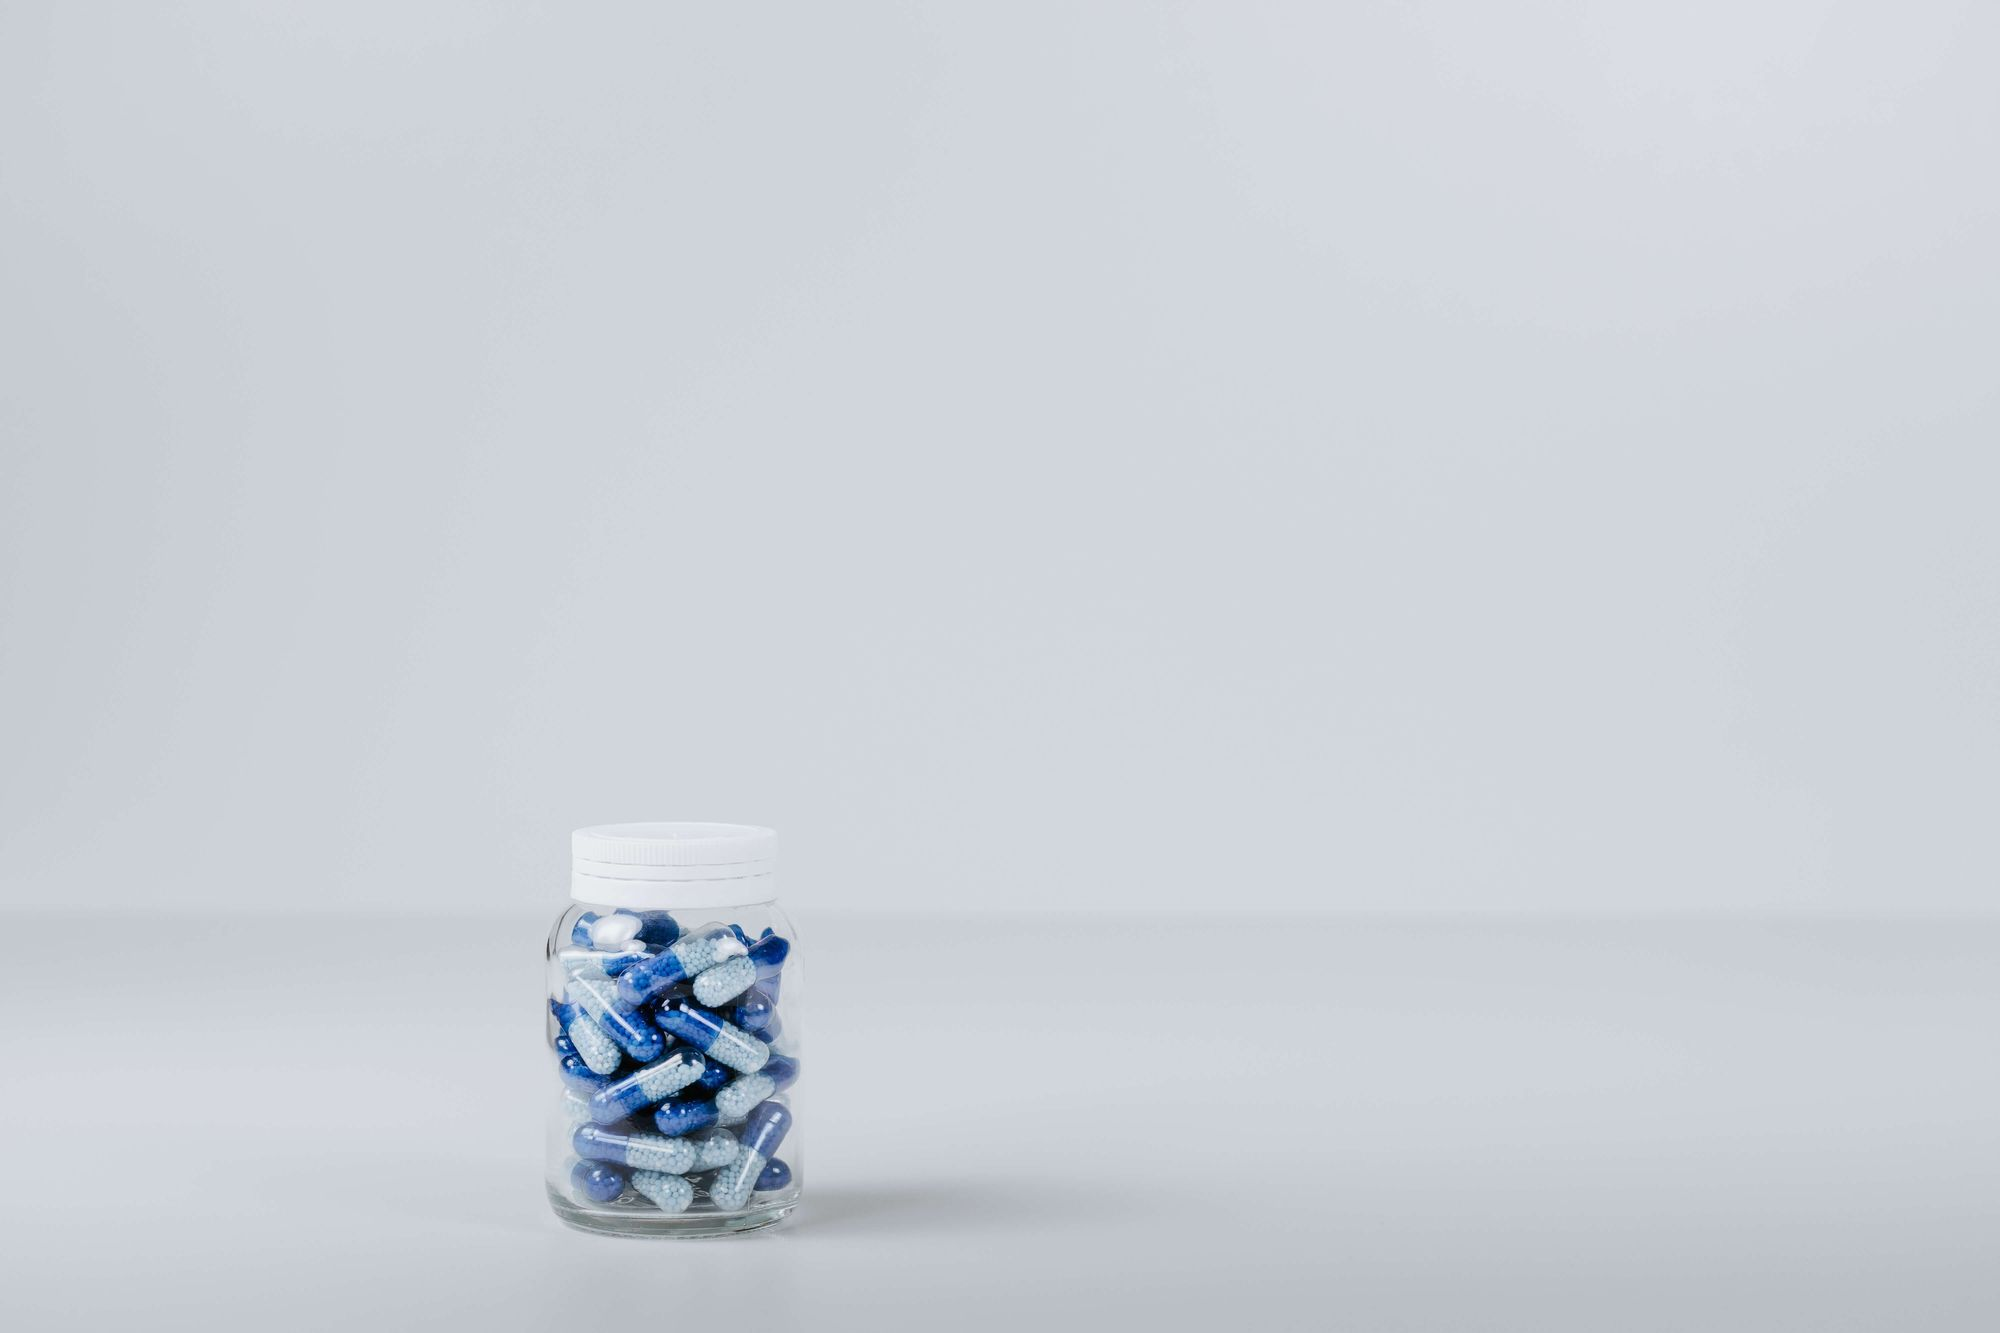 Can You Get an Amlodipine Prescription Online?